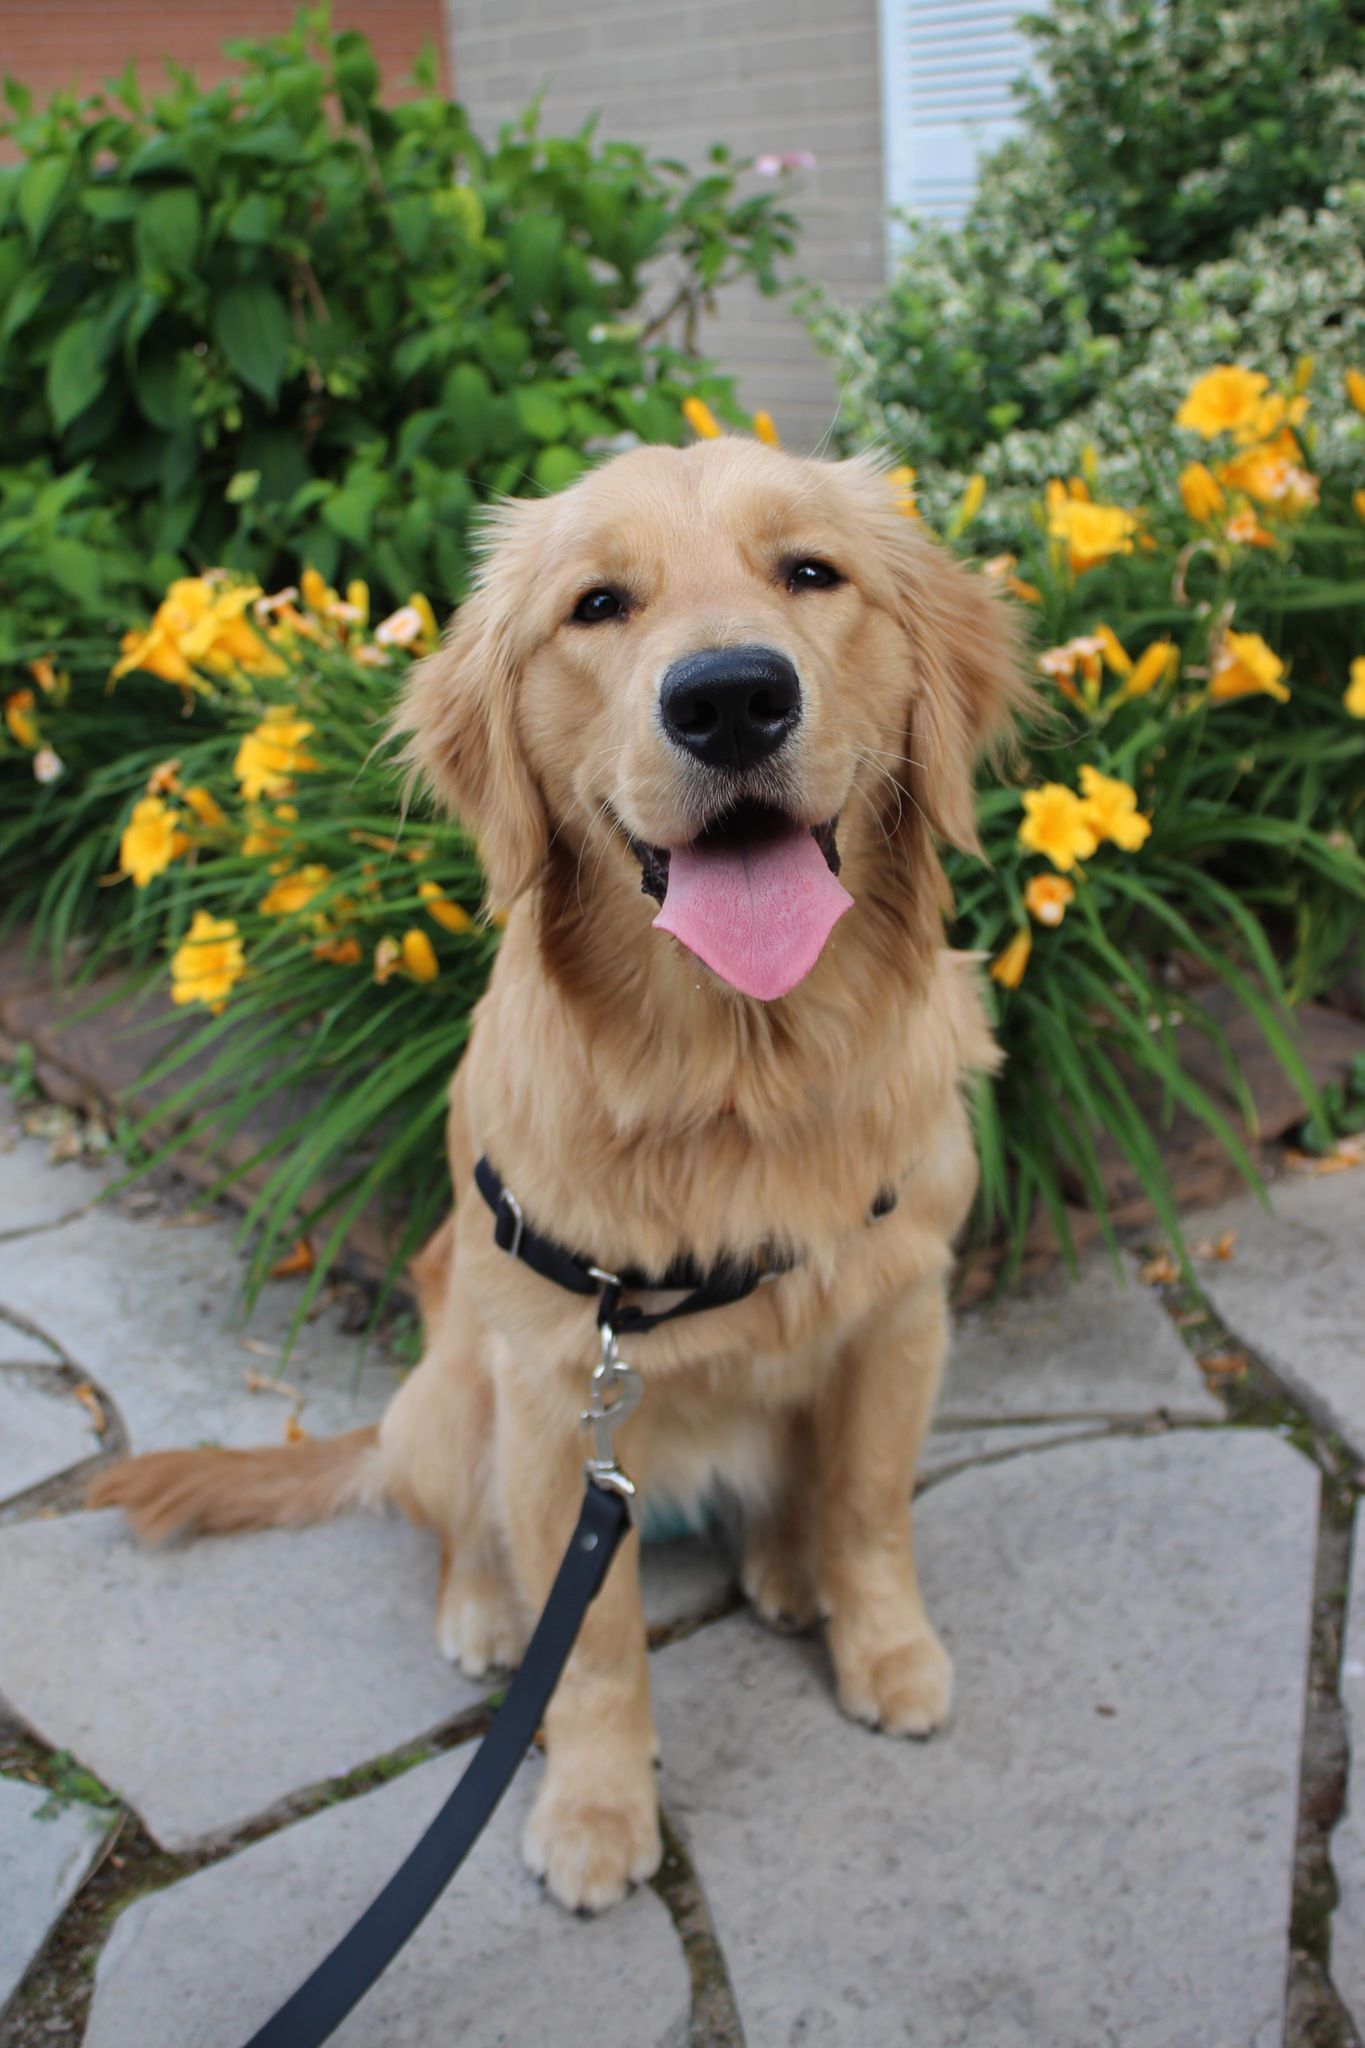 Avery - Avery is an 8 month old puppy in training to become a medical alert and mental health dog. She is a field golden retriever with a high energy drive and great focusing abilities. This stubborn and confident girl is also a quick learner and never fails to put a smile on her owners face.